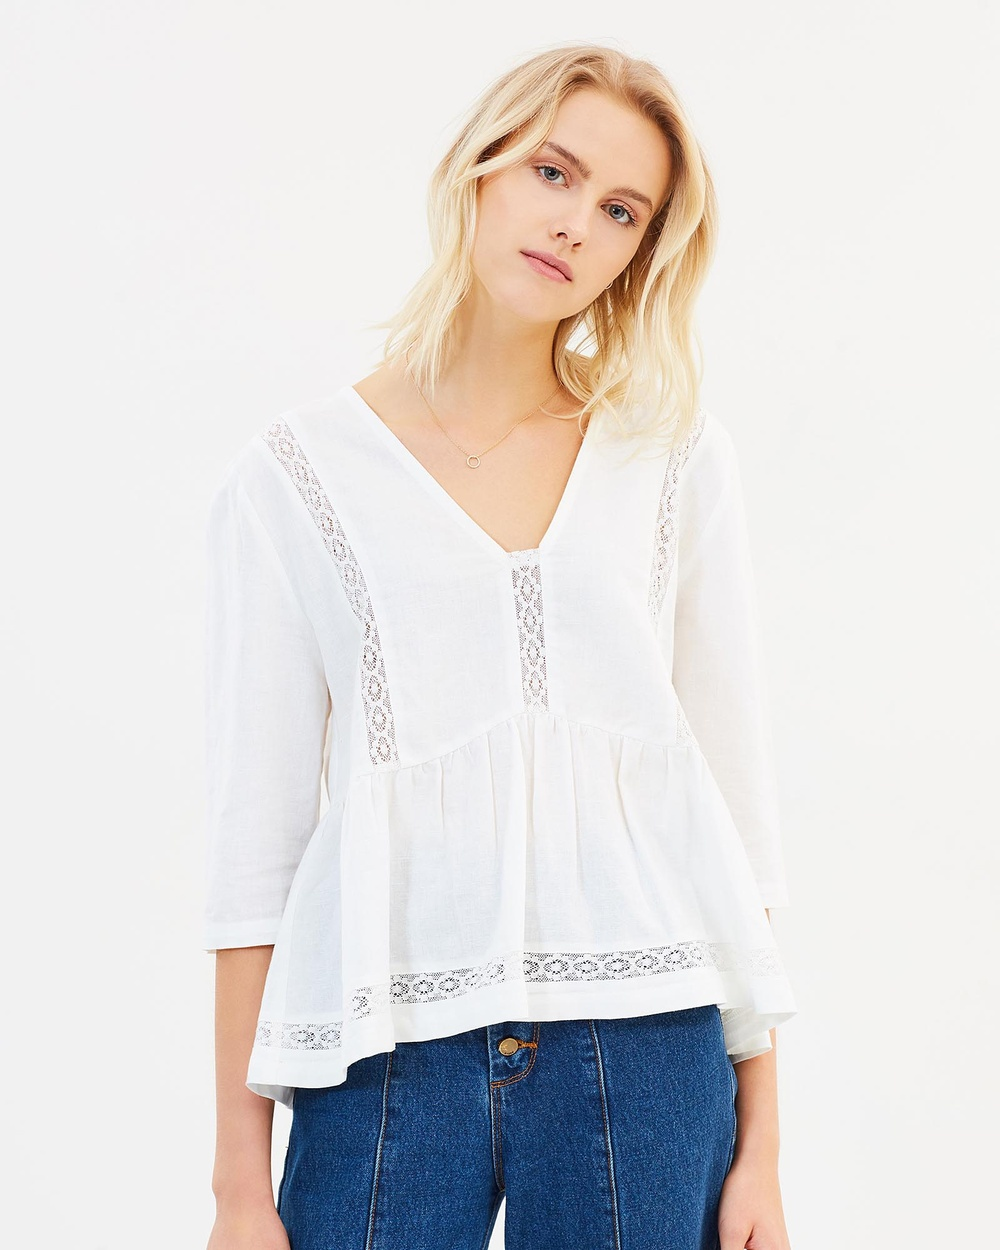 Ryder Emilia Linen Top Tops Off White Emilia Linen Top